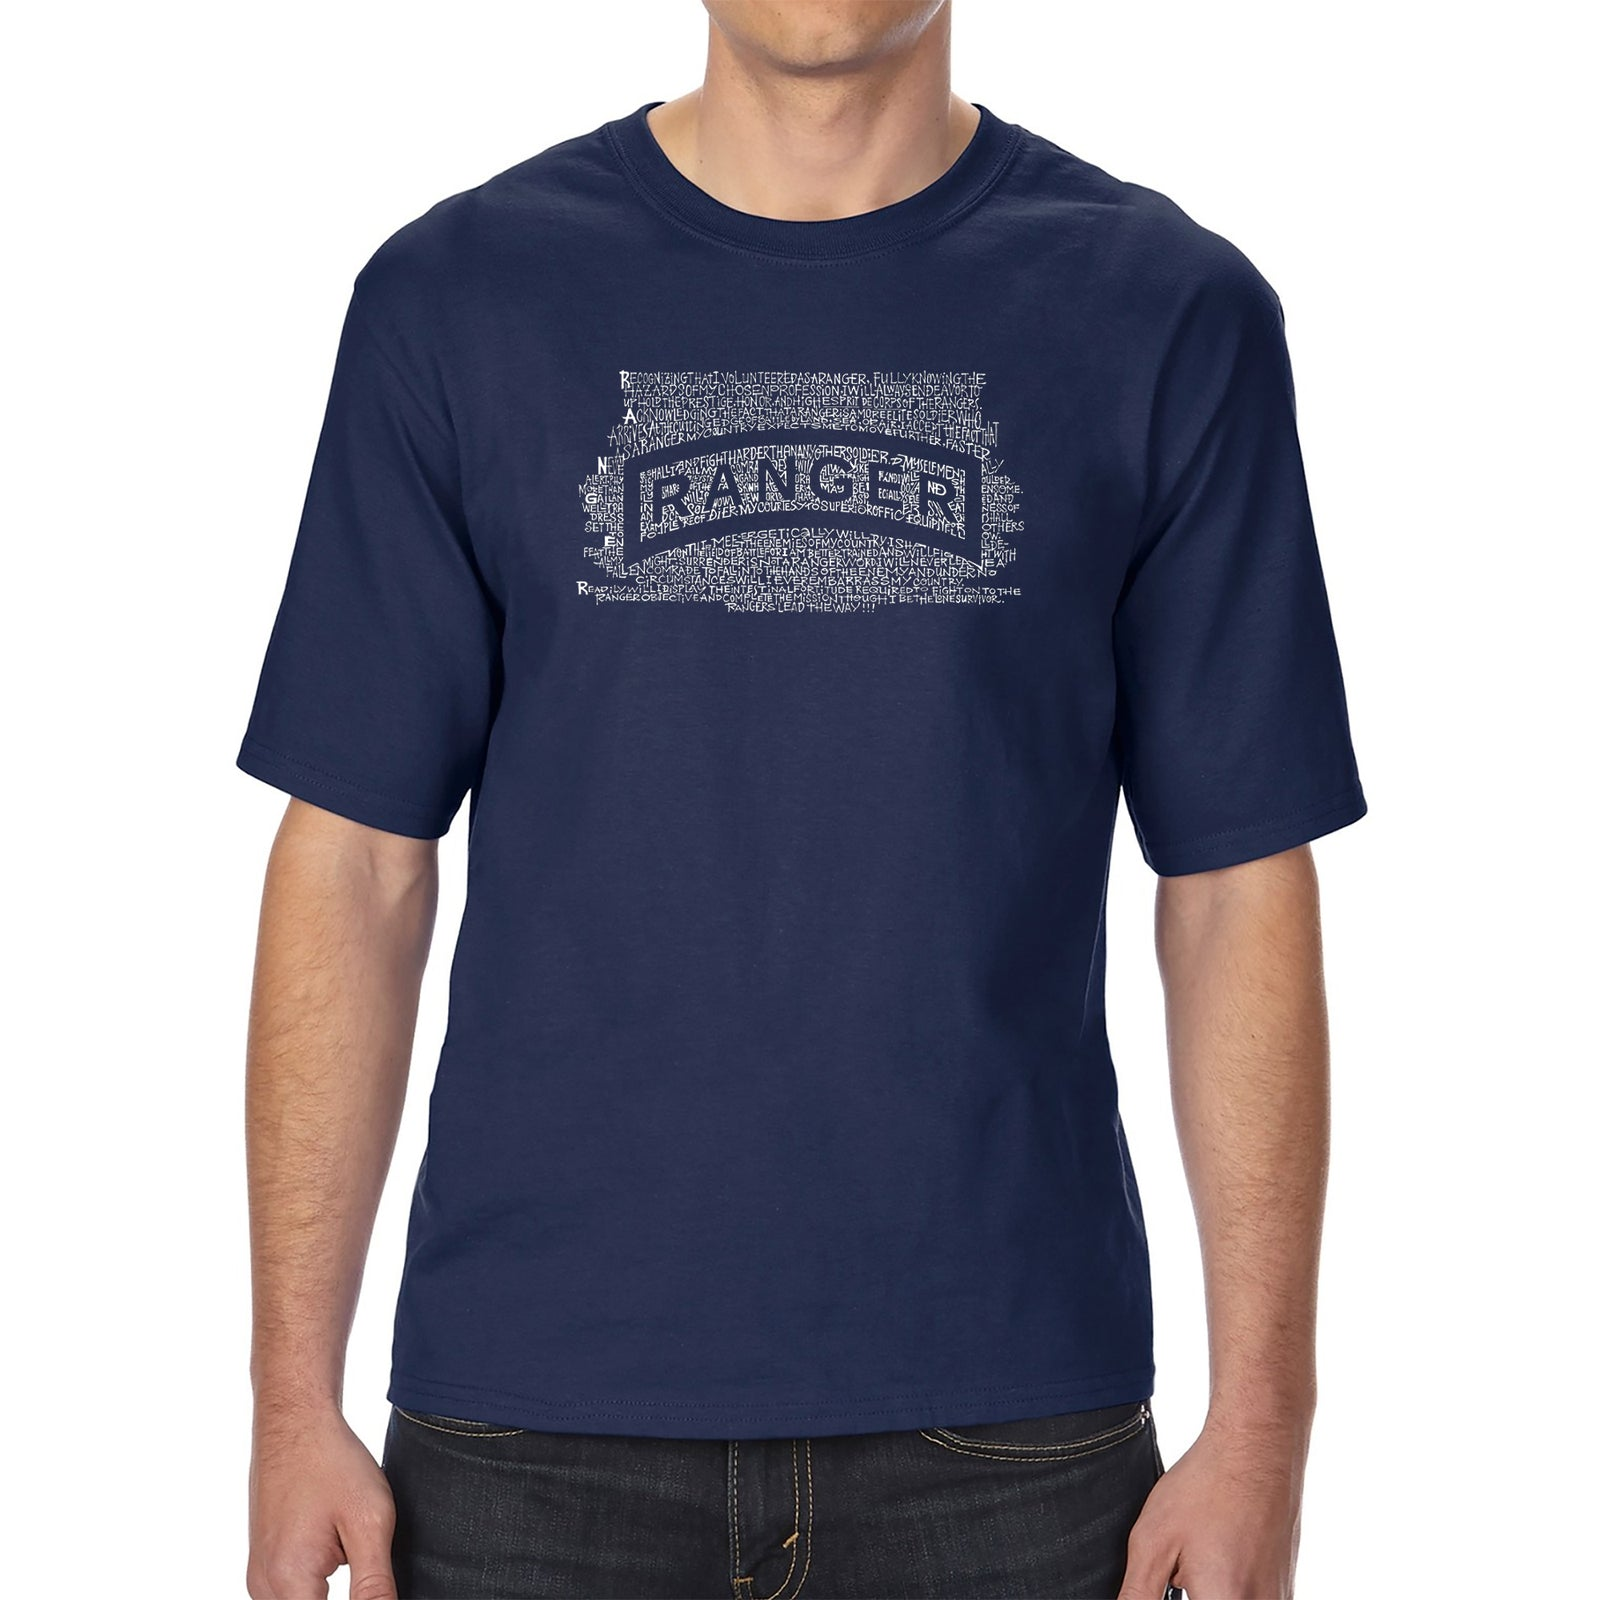 Men's Tall and Long Word Art T-shirt - The US Ranger Creed